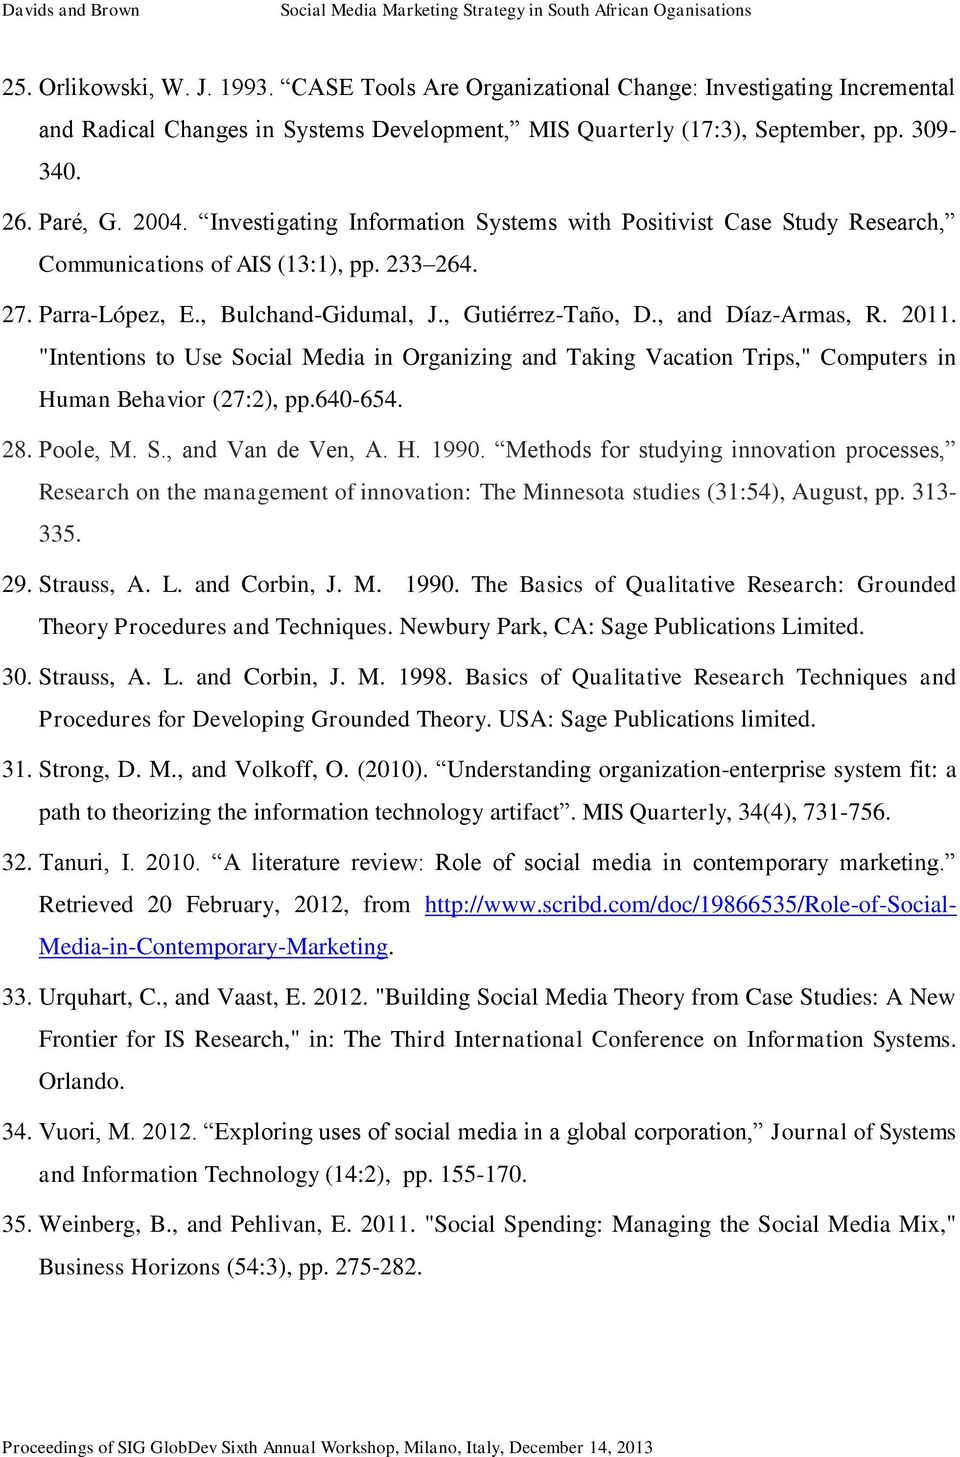 "2011. ""Intentions to Use Social Media in Organizing and Taking Vacation Trips,"" Computers in Human Behavior (27:2), pp.640-654. 28. Poole, M. S., and Van de Ven, A. H. 1990."